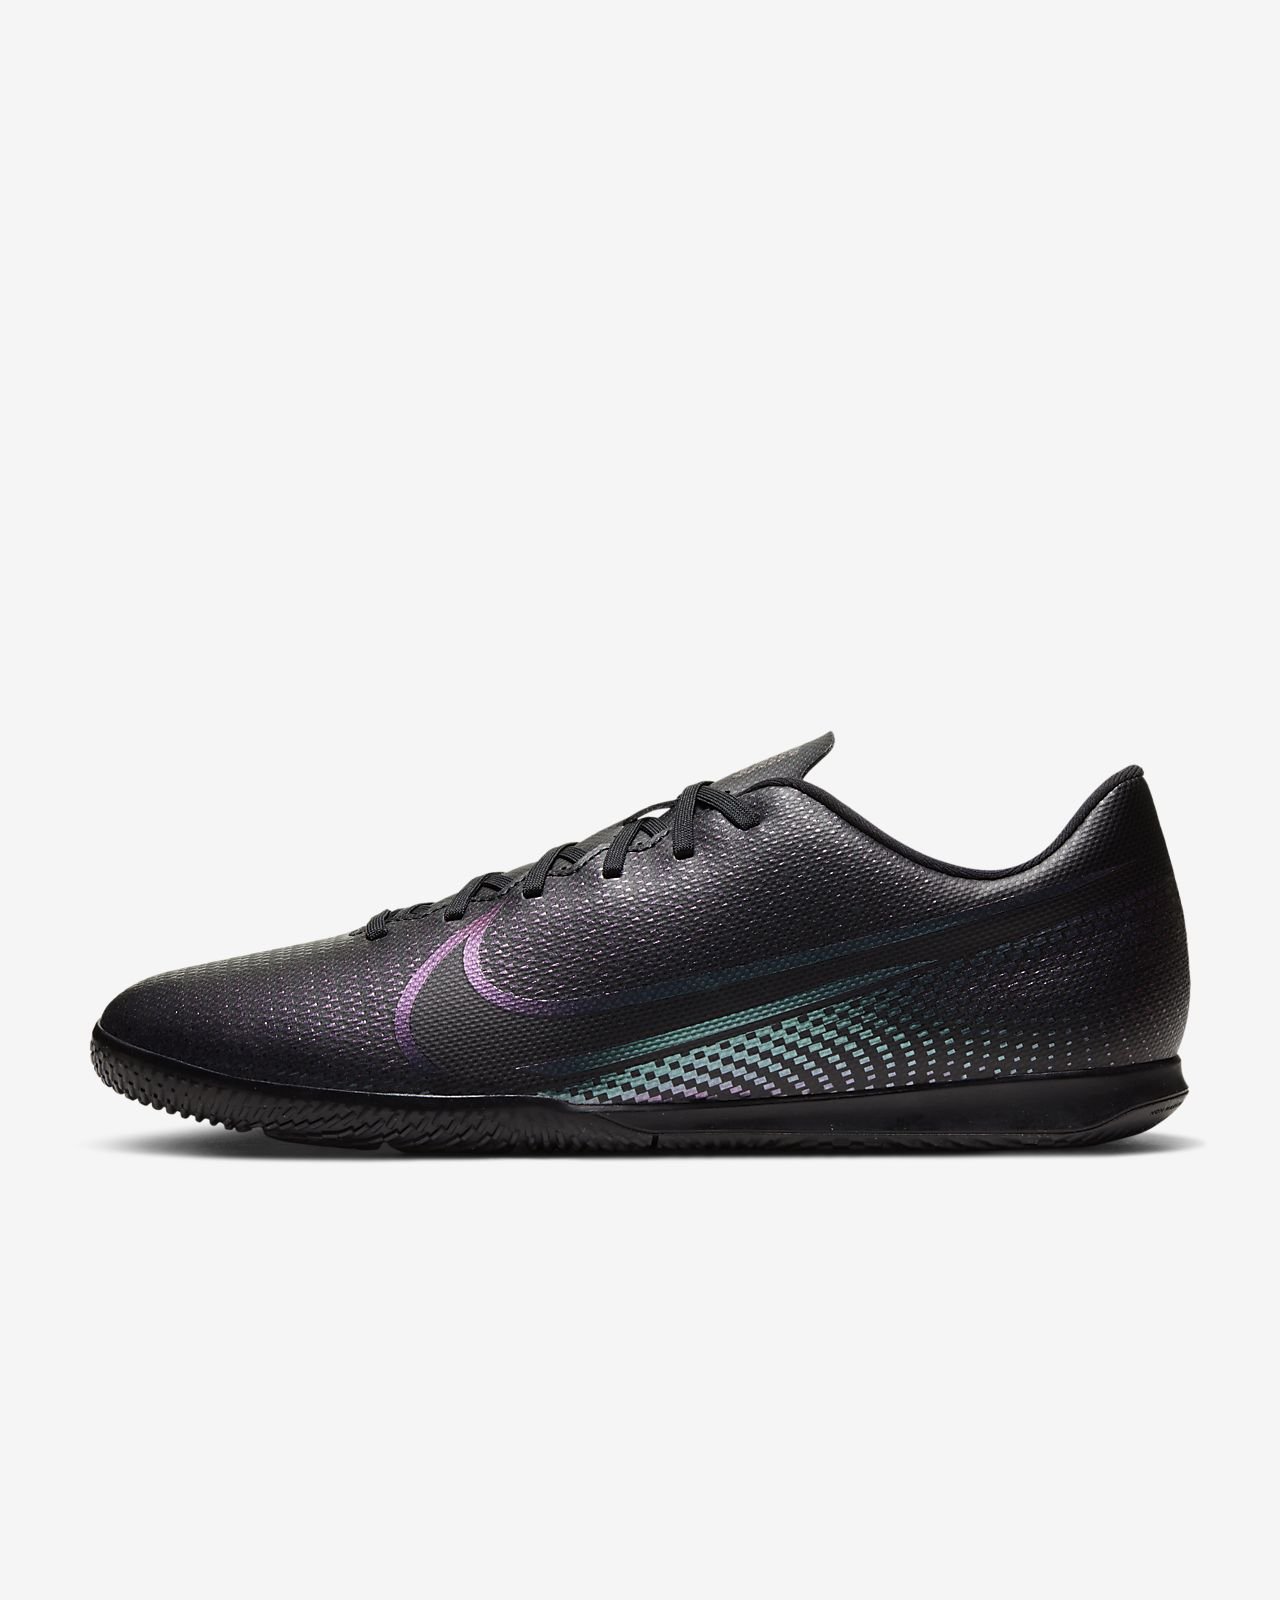 Nike Mercurial Vapor 13 Club IC Indoor Court Football Shoe